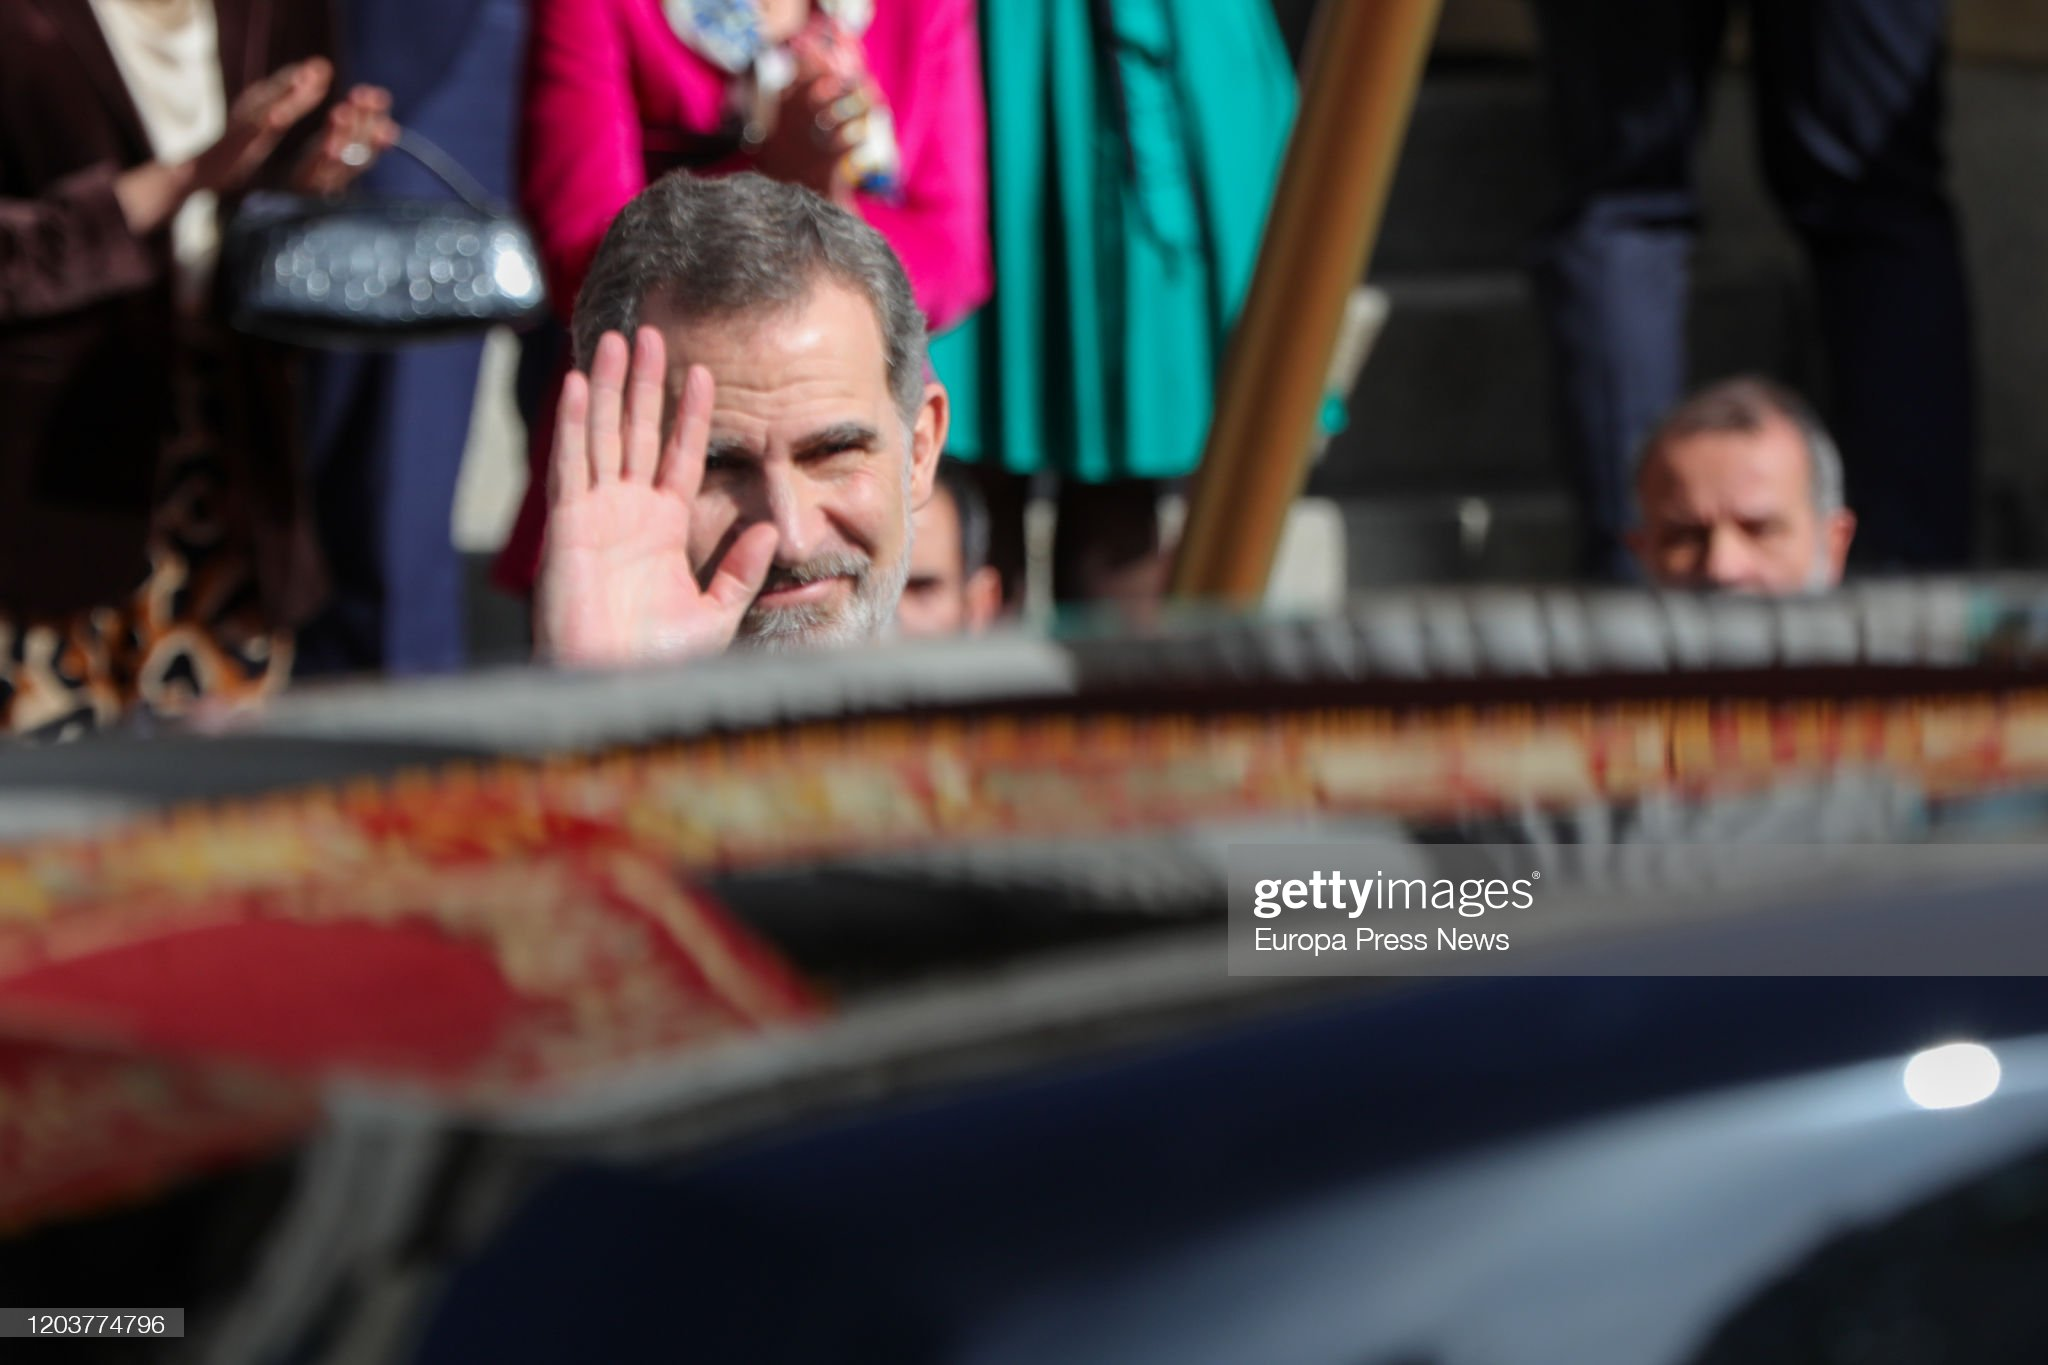 https://media.gettyimages.com/photos/king-felipe-vi-of-spain-left-the-solemn-opening-of-the-14th-at-the-picture-id1203774796?s=2048x2048